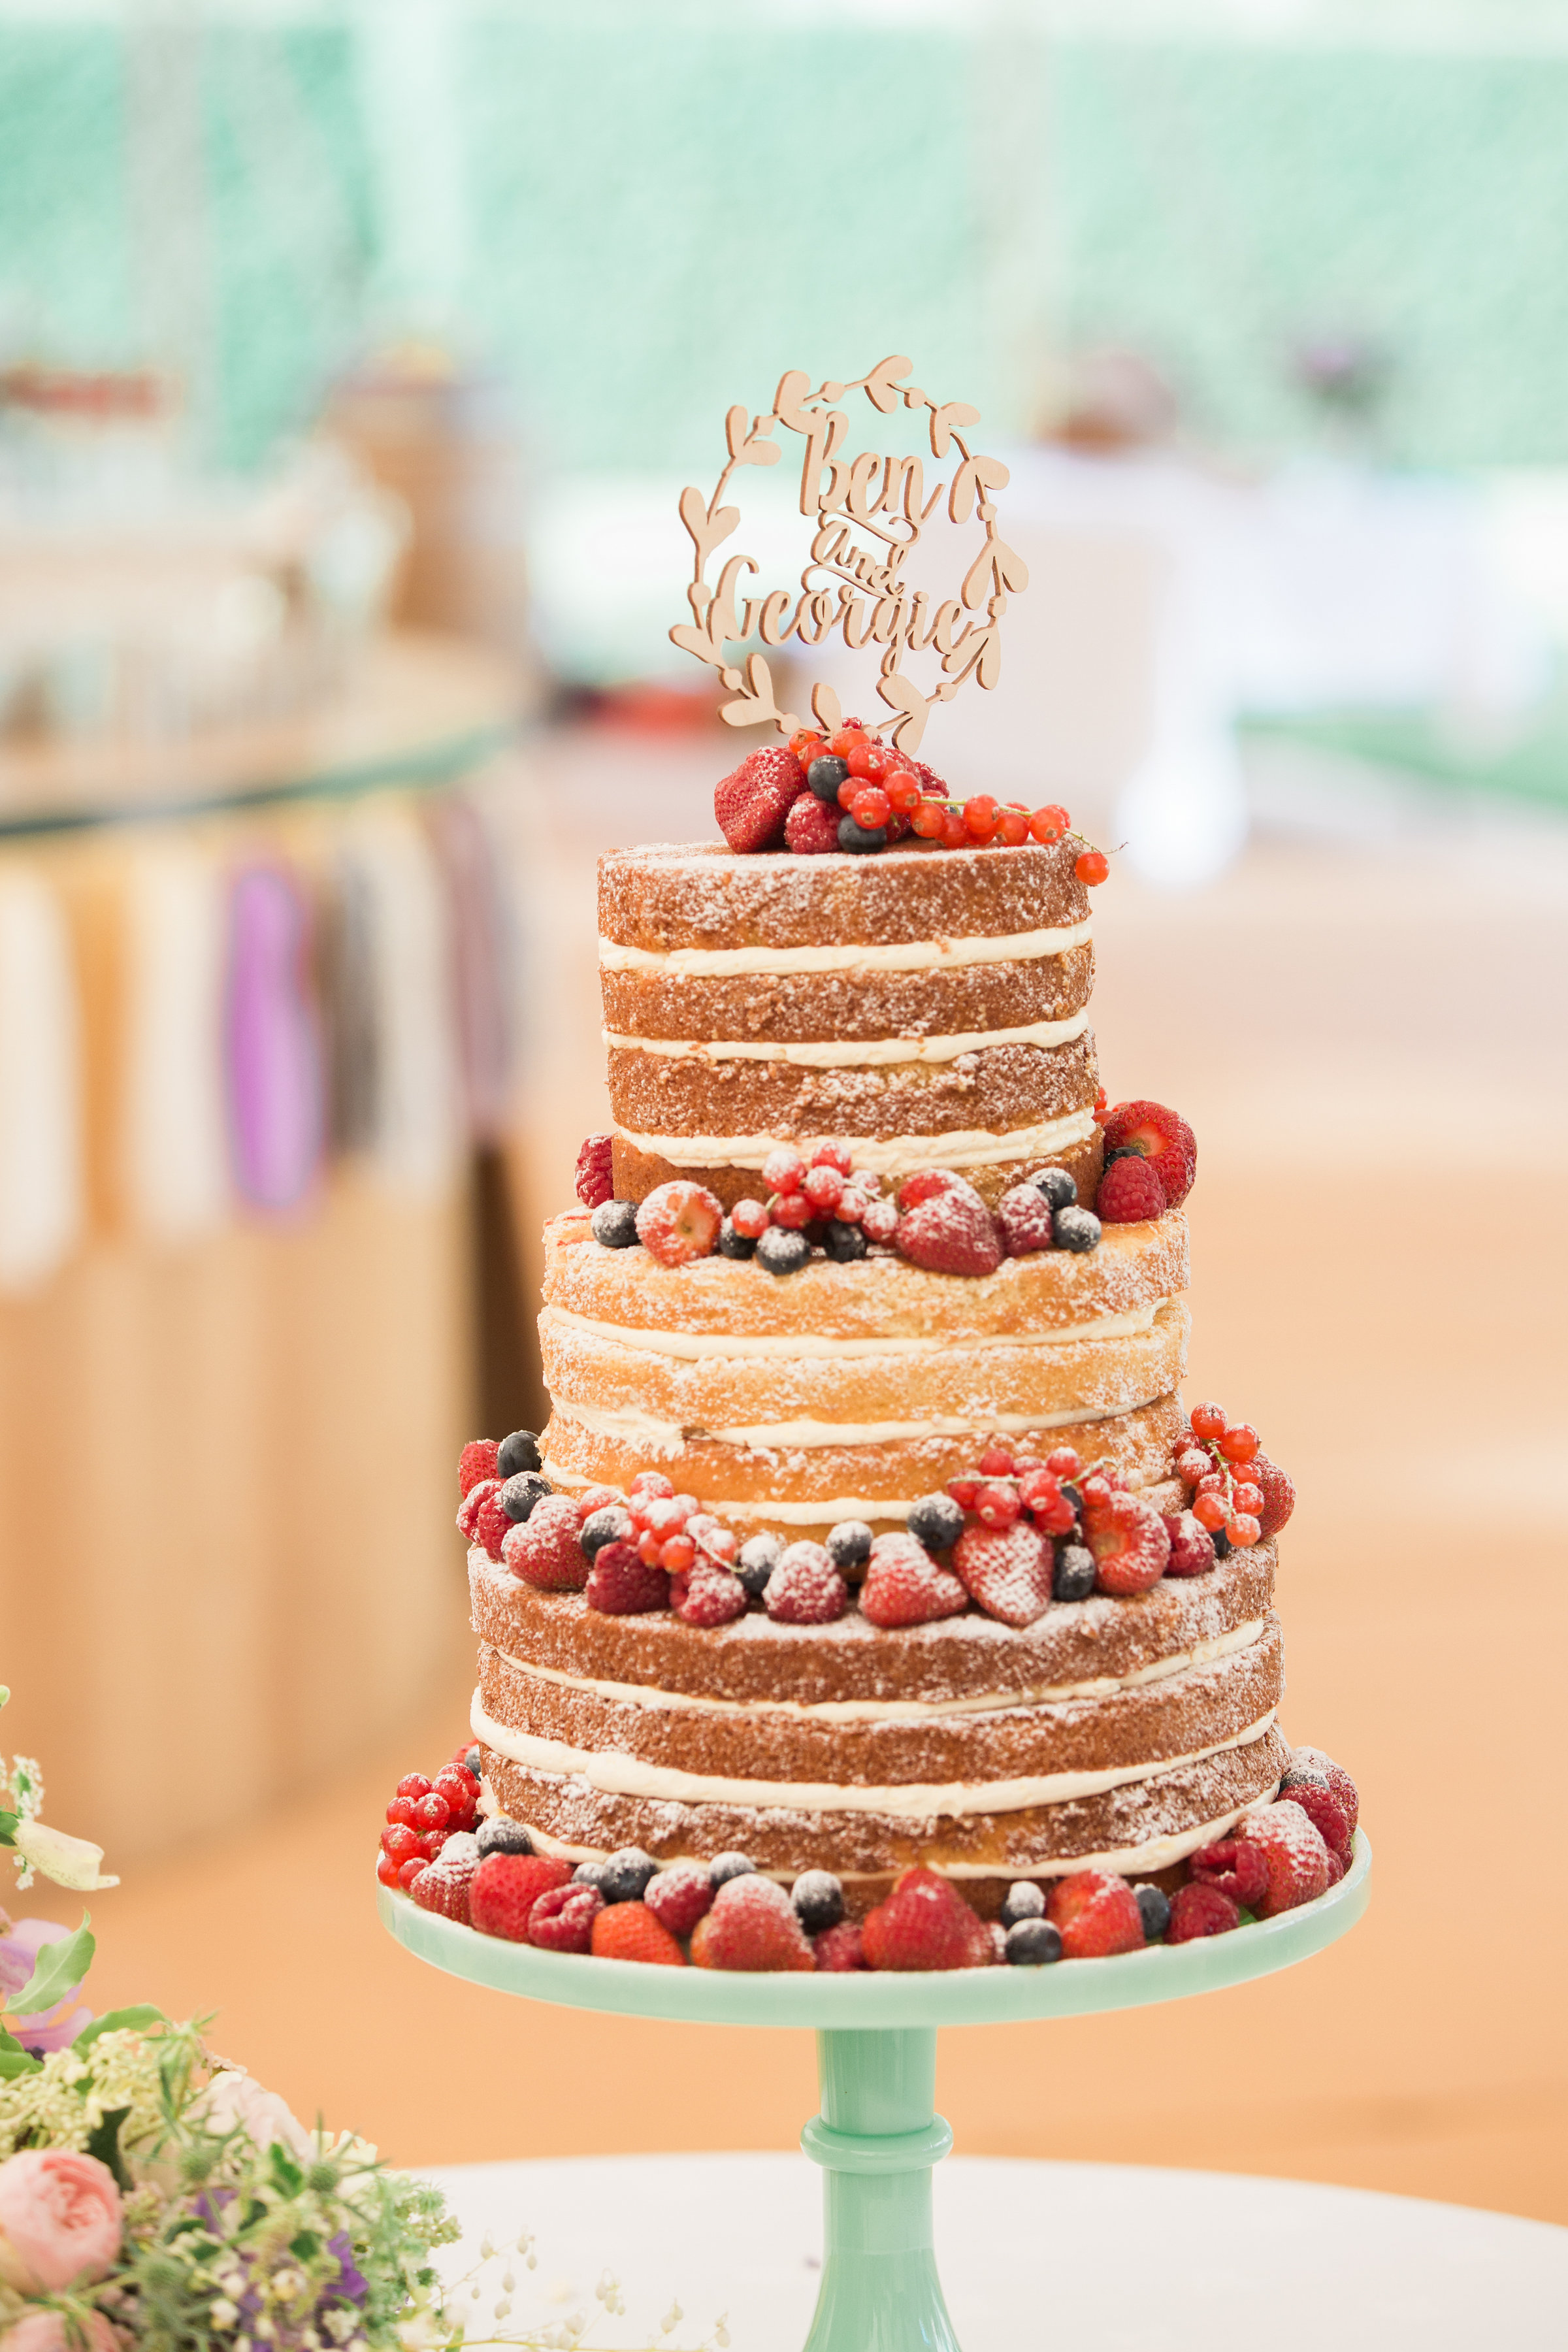 Georgie & Ben's PapaKåta Sperry Tent wedding at Newington House captured by Lucy Davenport: Wedding Cake by Red House Cake Company